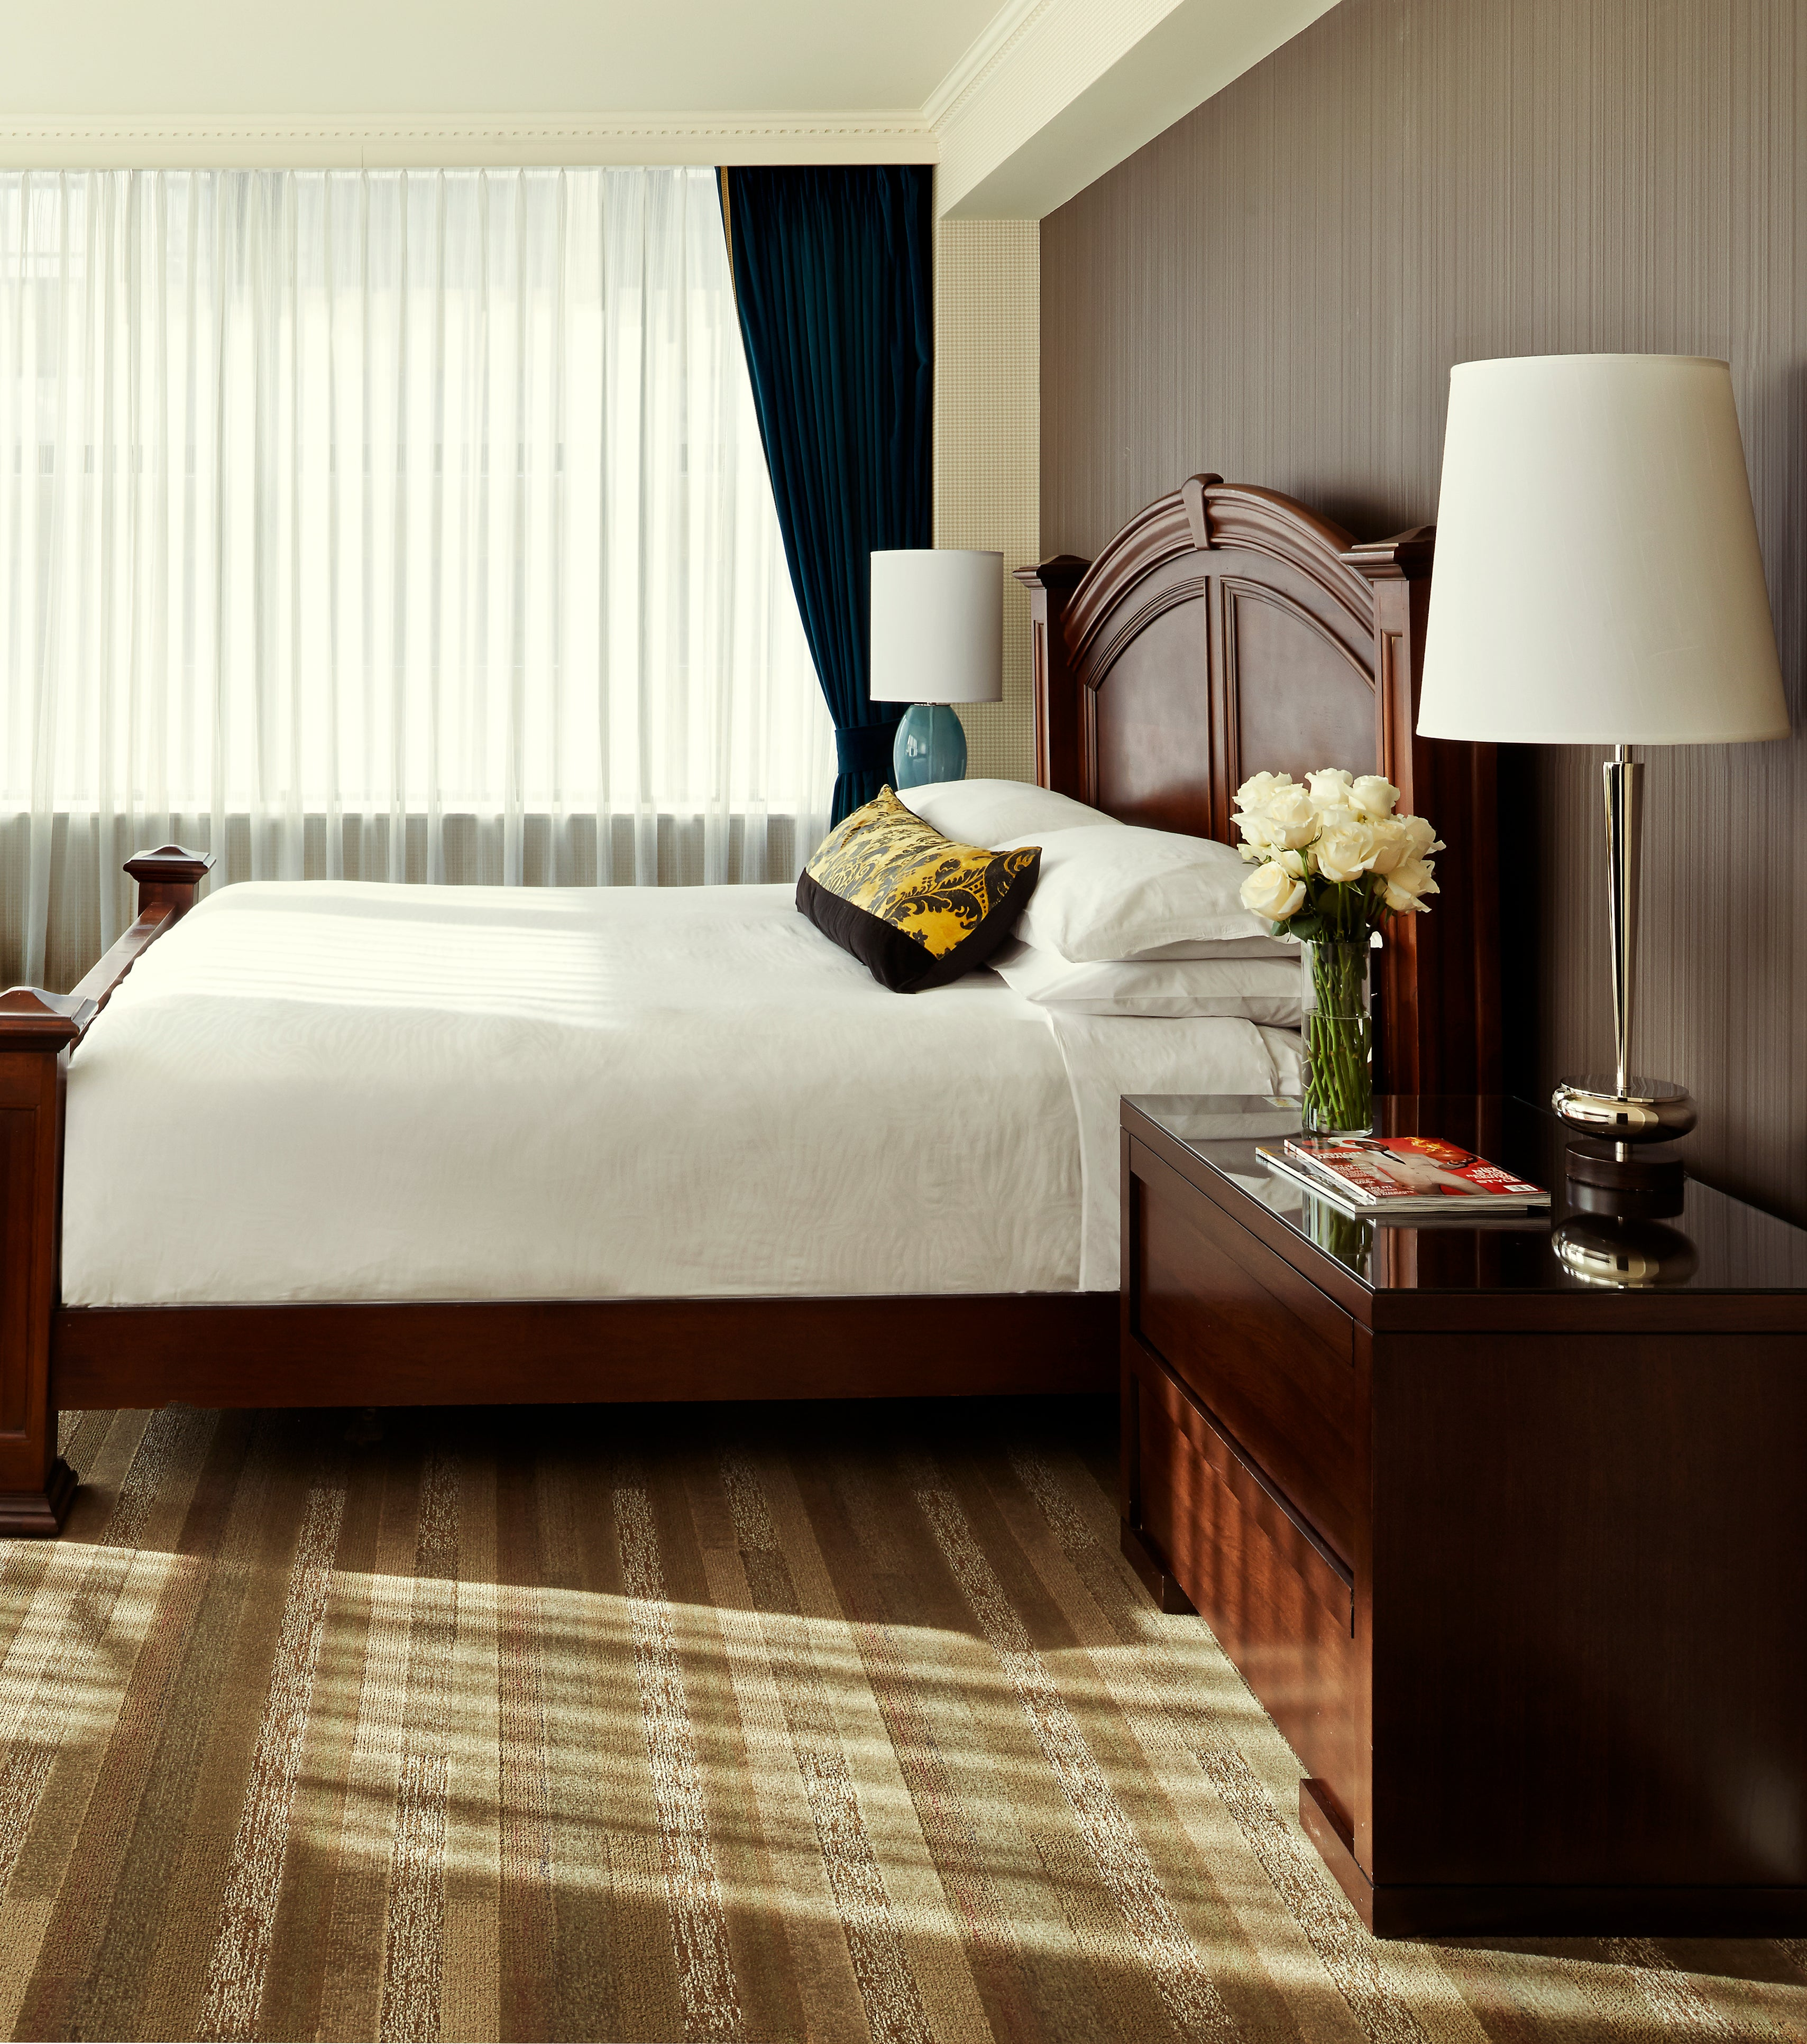 The Grand Hotel Minneapolis - a Kimpton Hotel